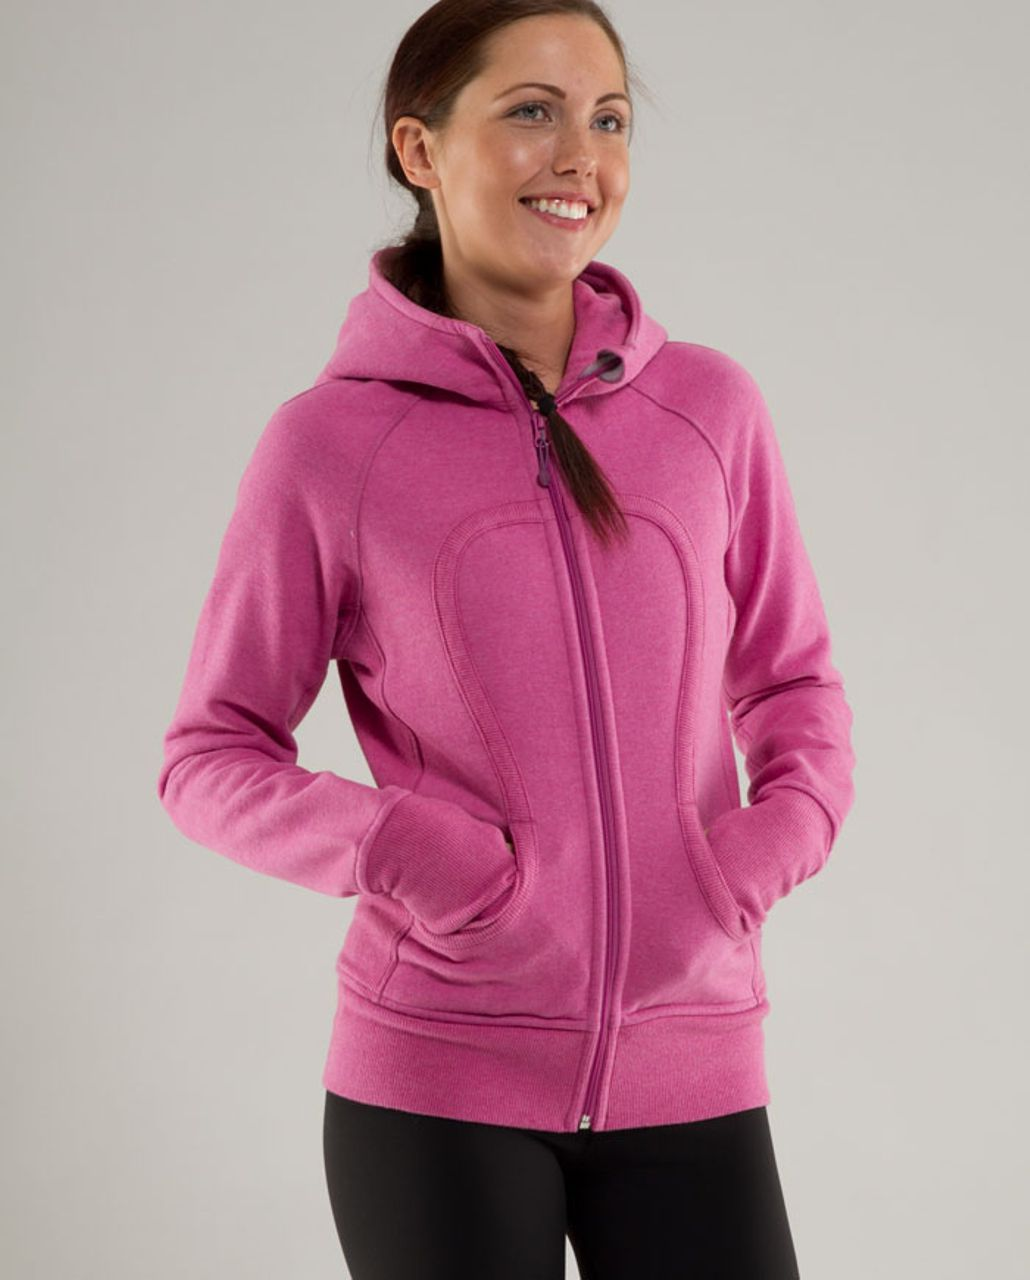 Lululemon Scuba Hoodie - Heathered Rose Petal /  Lavender Grey